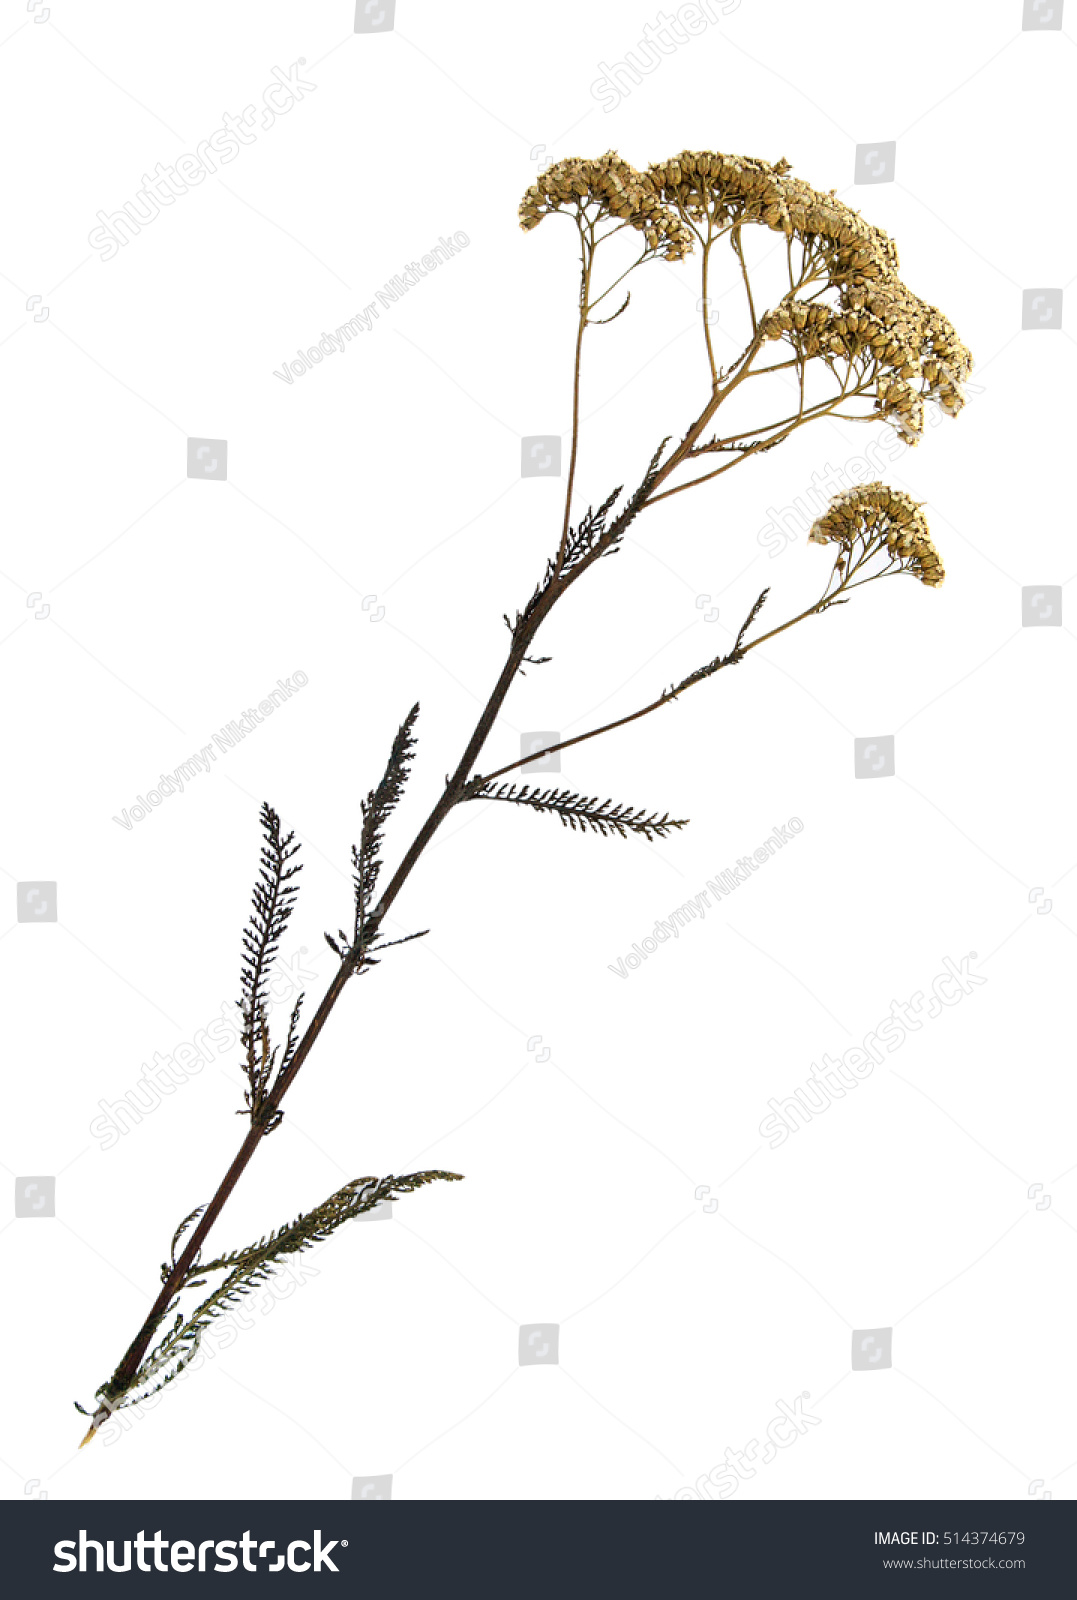 How to scrapbook dried flowers - Pressed And Dried Flowers Of Common Yarrow Achillea Millefolium On Stem With Leaves Isolated